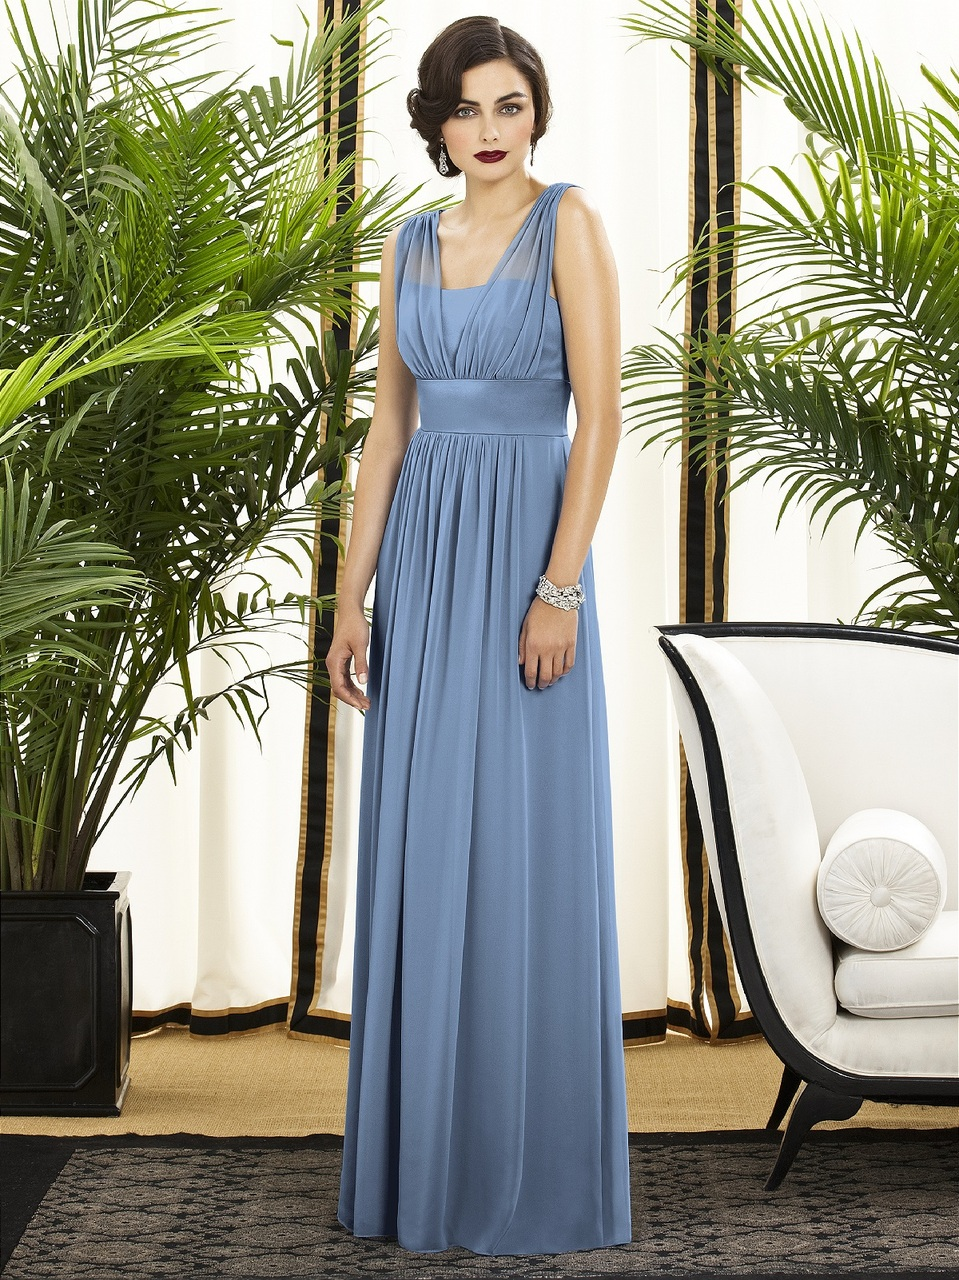 5c9ddb1dd170 After Six Bridesmaid Dress 6646 - Aztec Stone and Reclamations